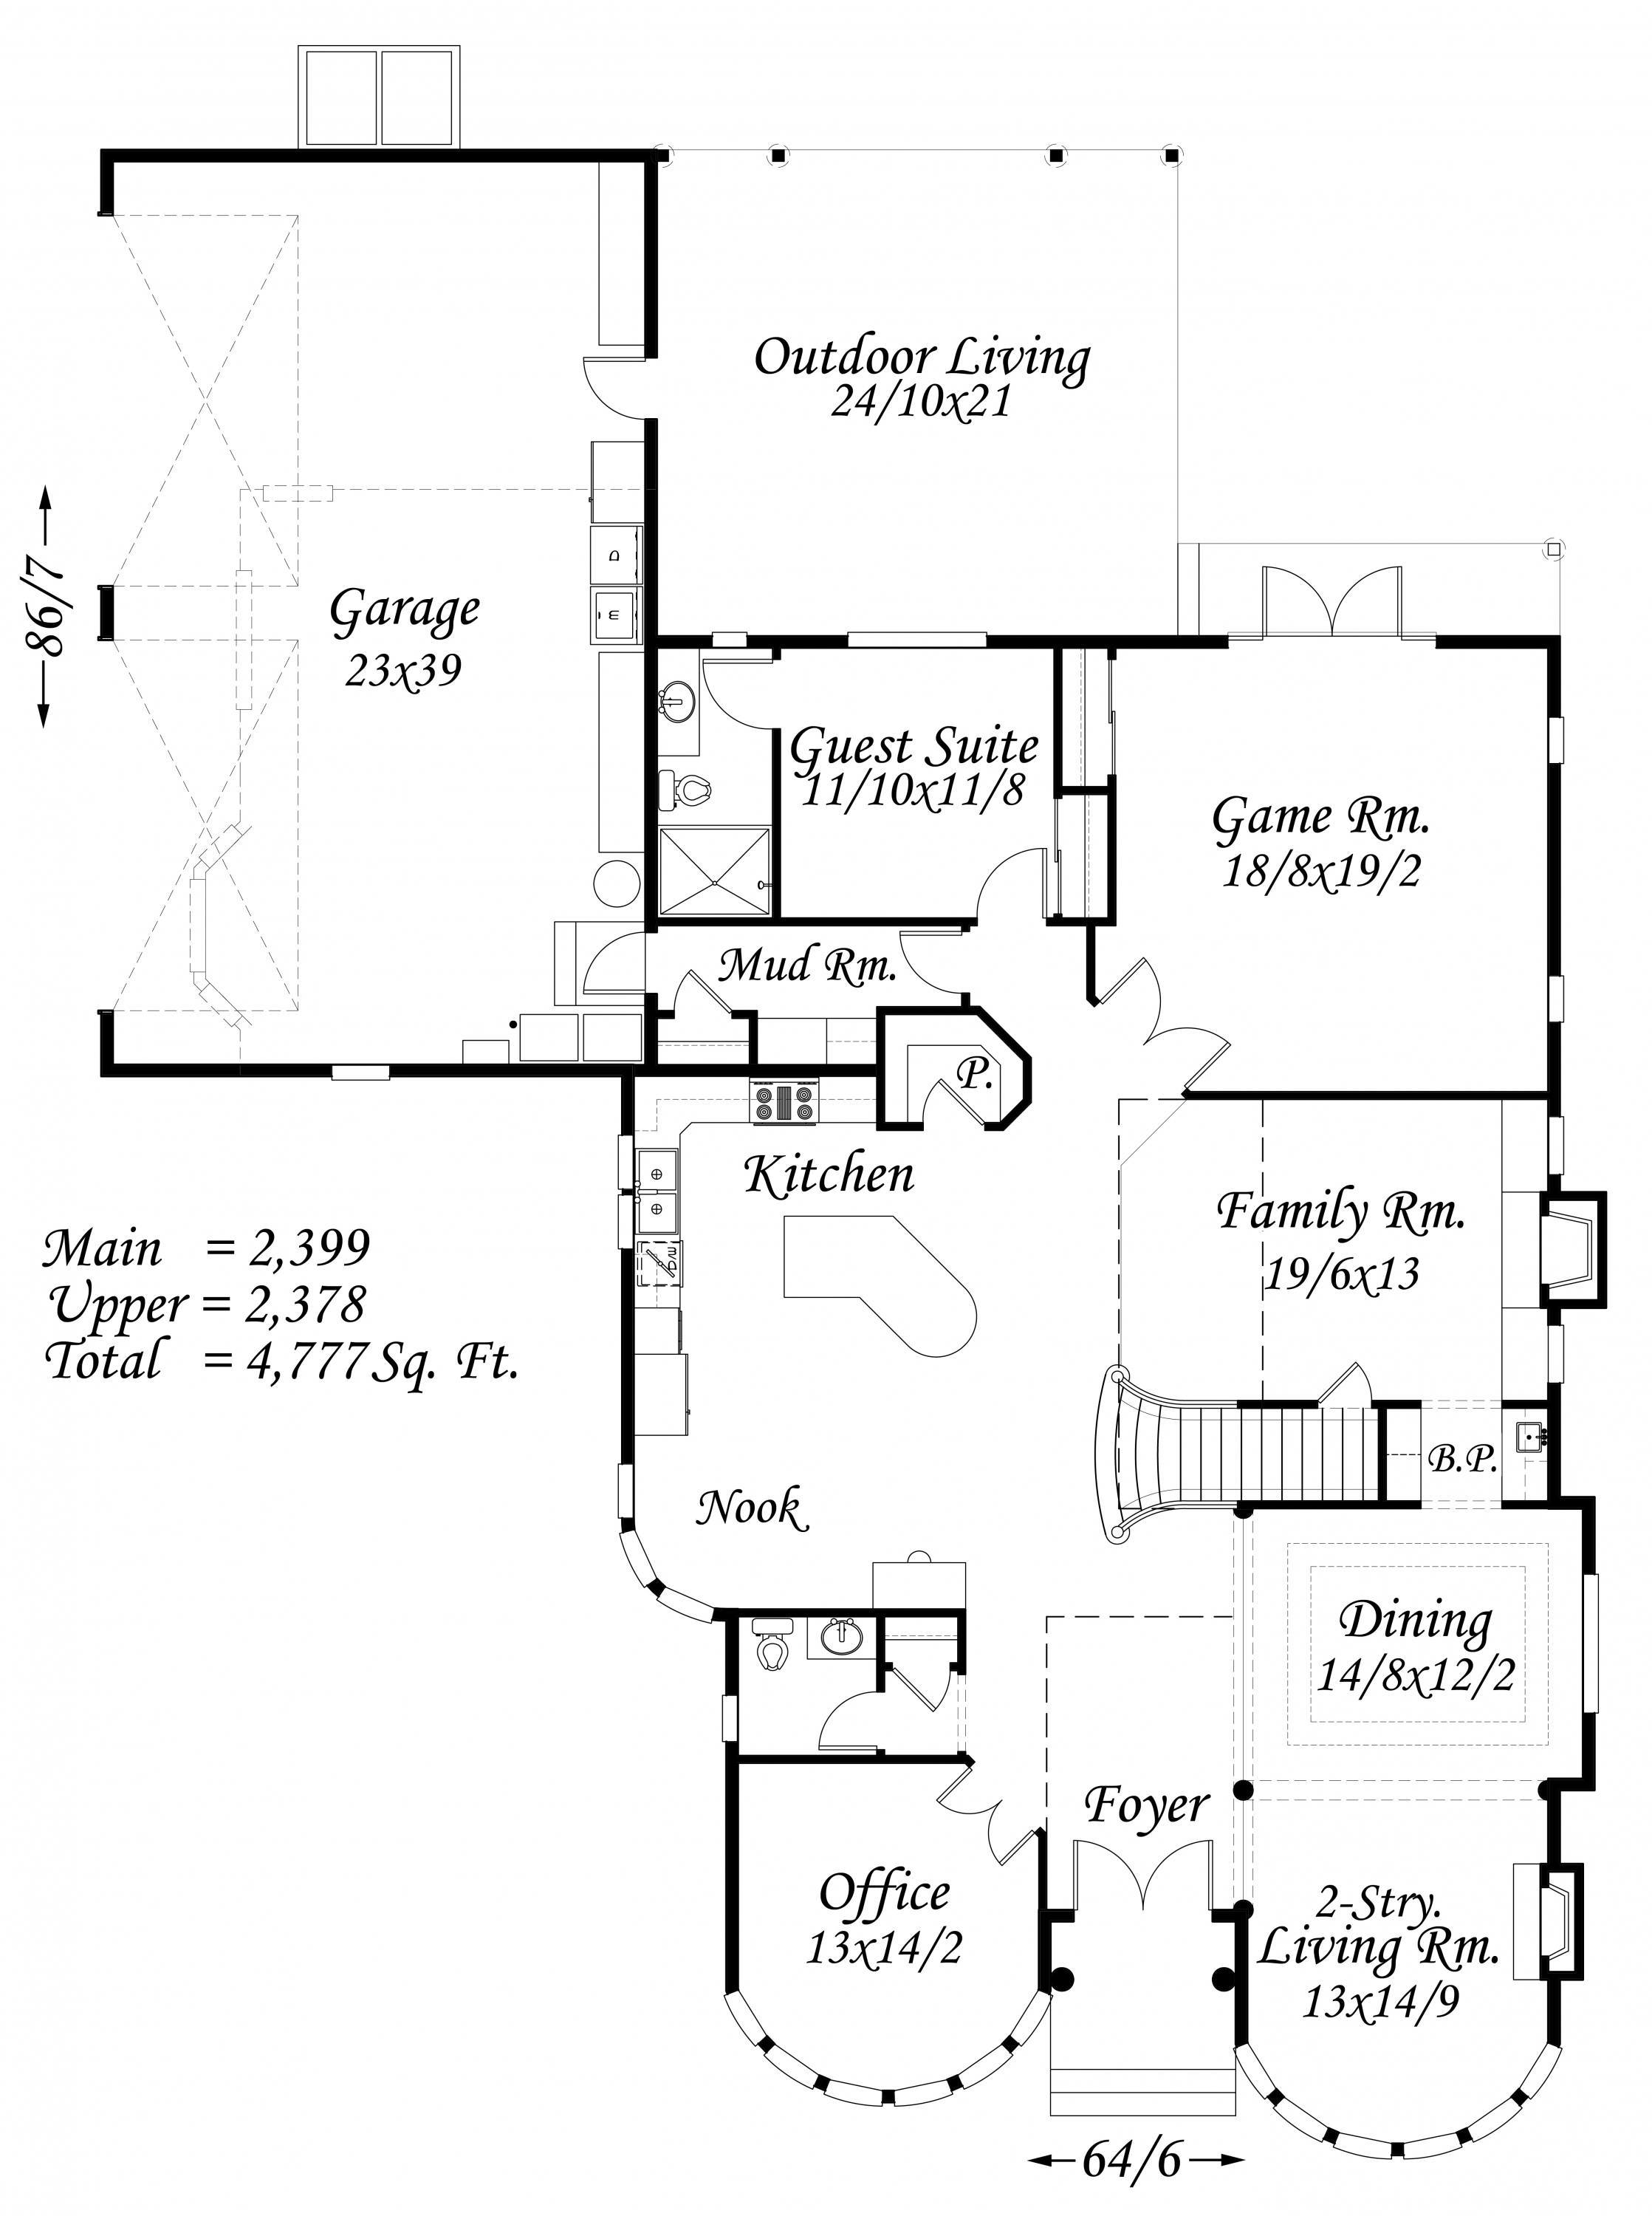 Luxurious house plan old world european style house plans for Old world house plans